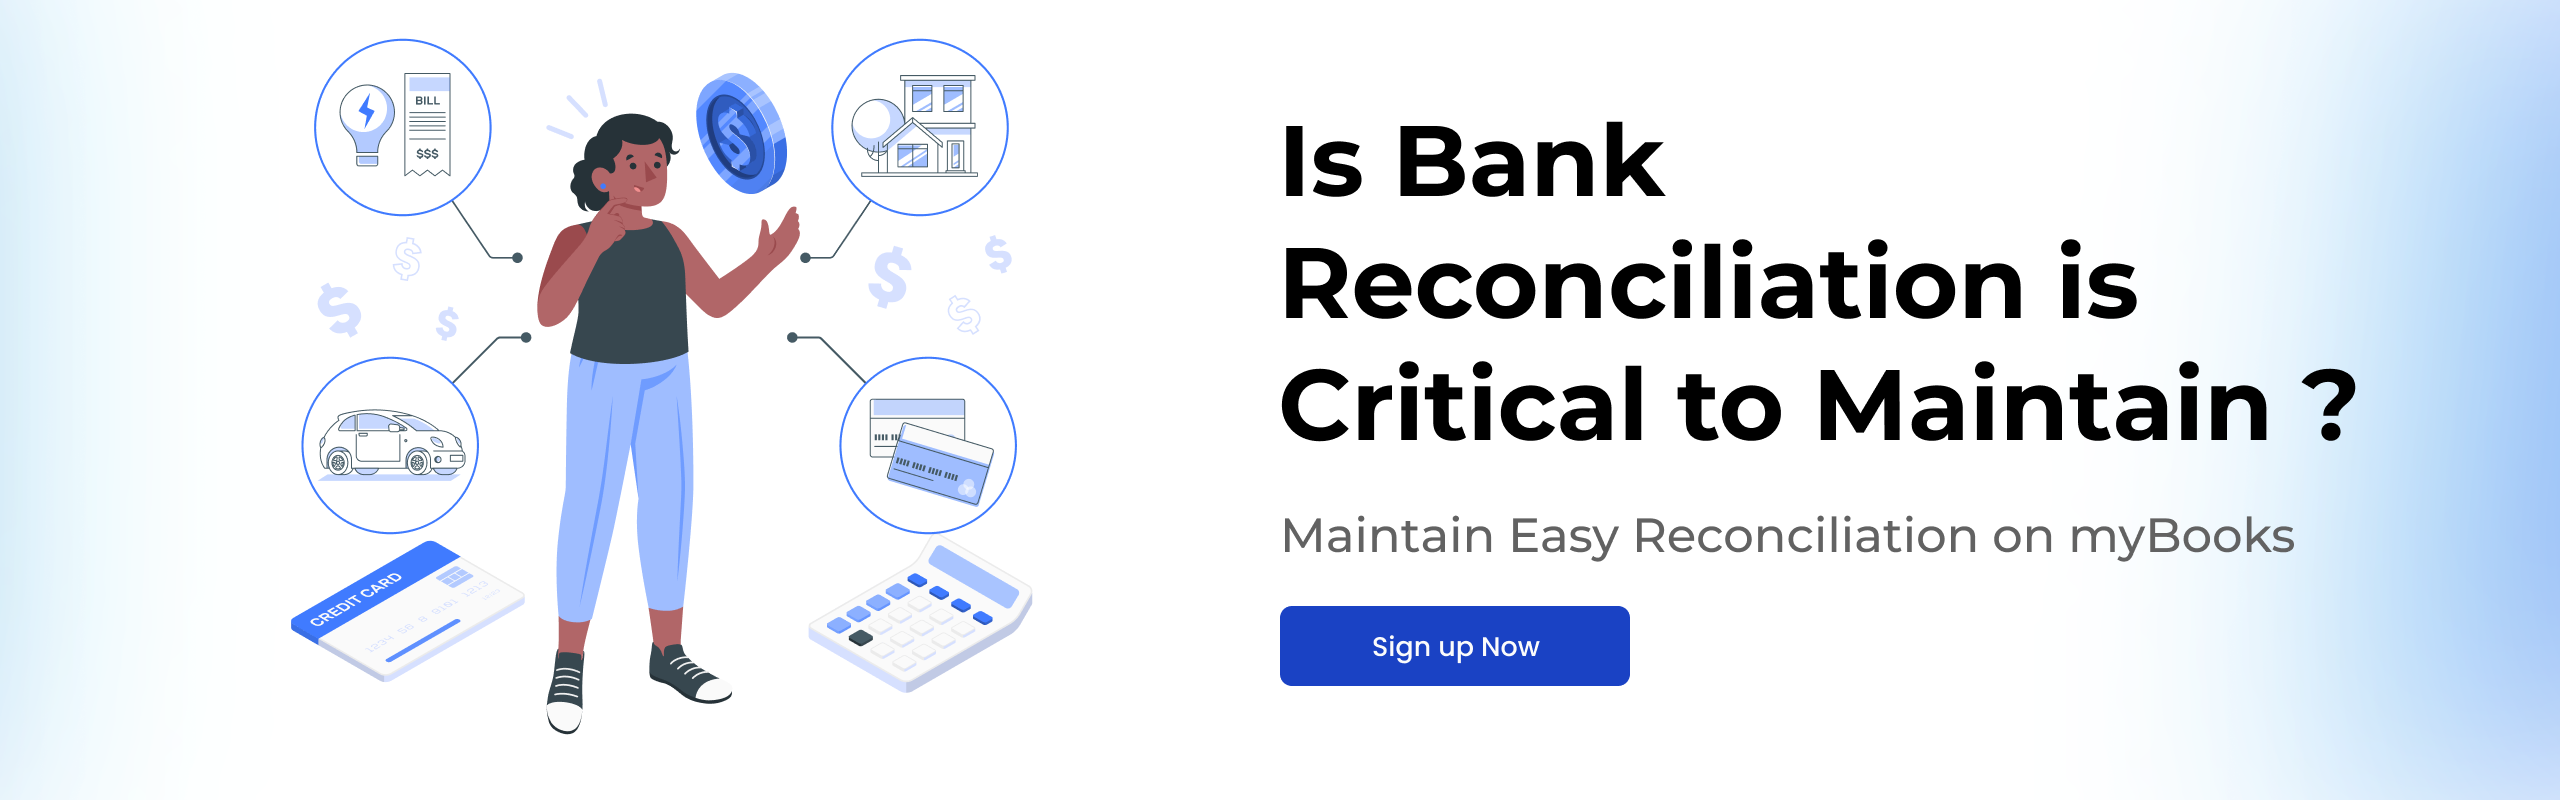 Is Bank Reconciliation is Critical to Maintain